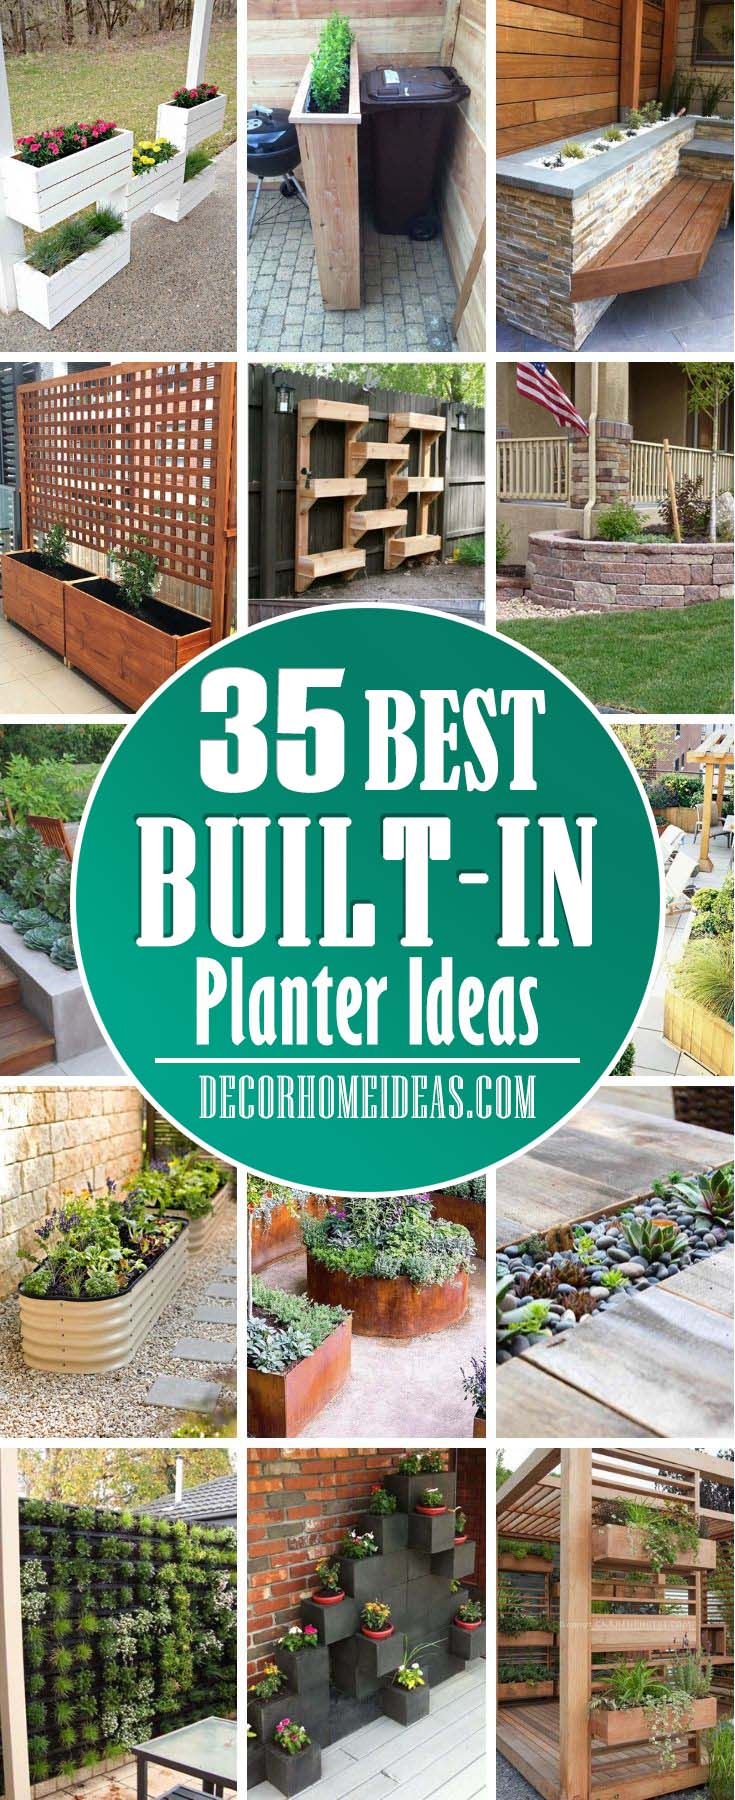 35 beautiful built in planter ideas to